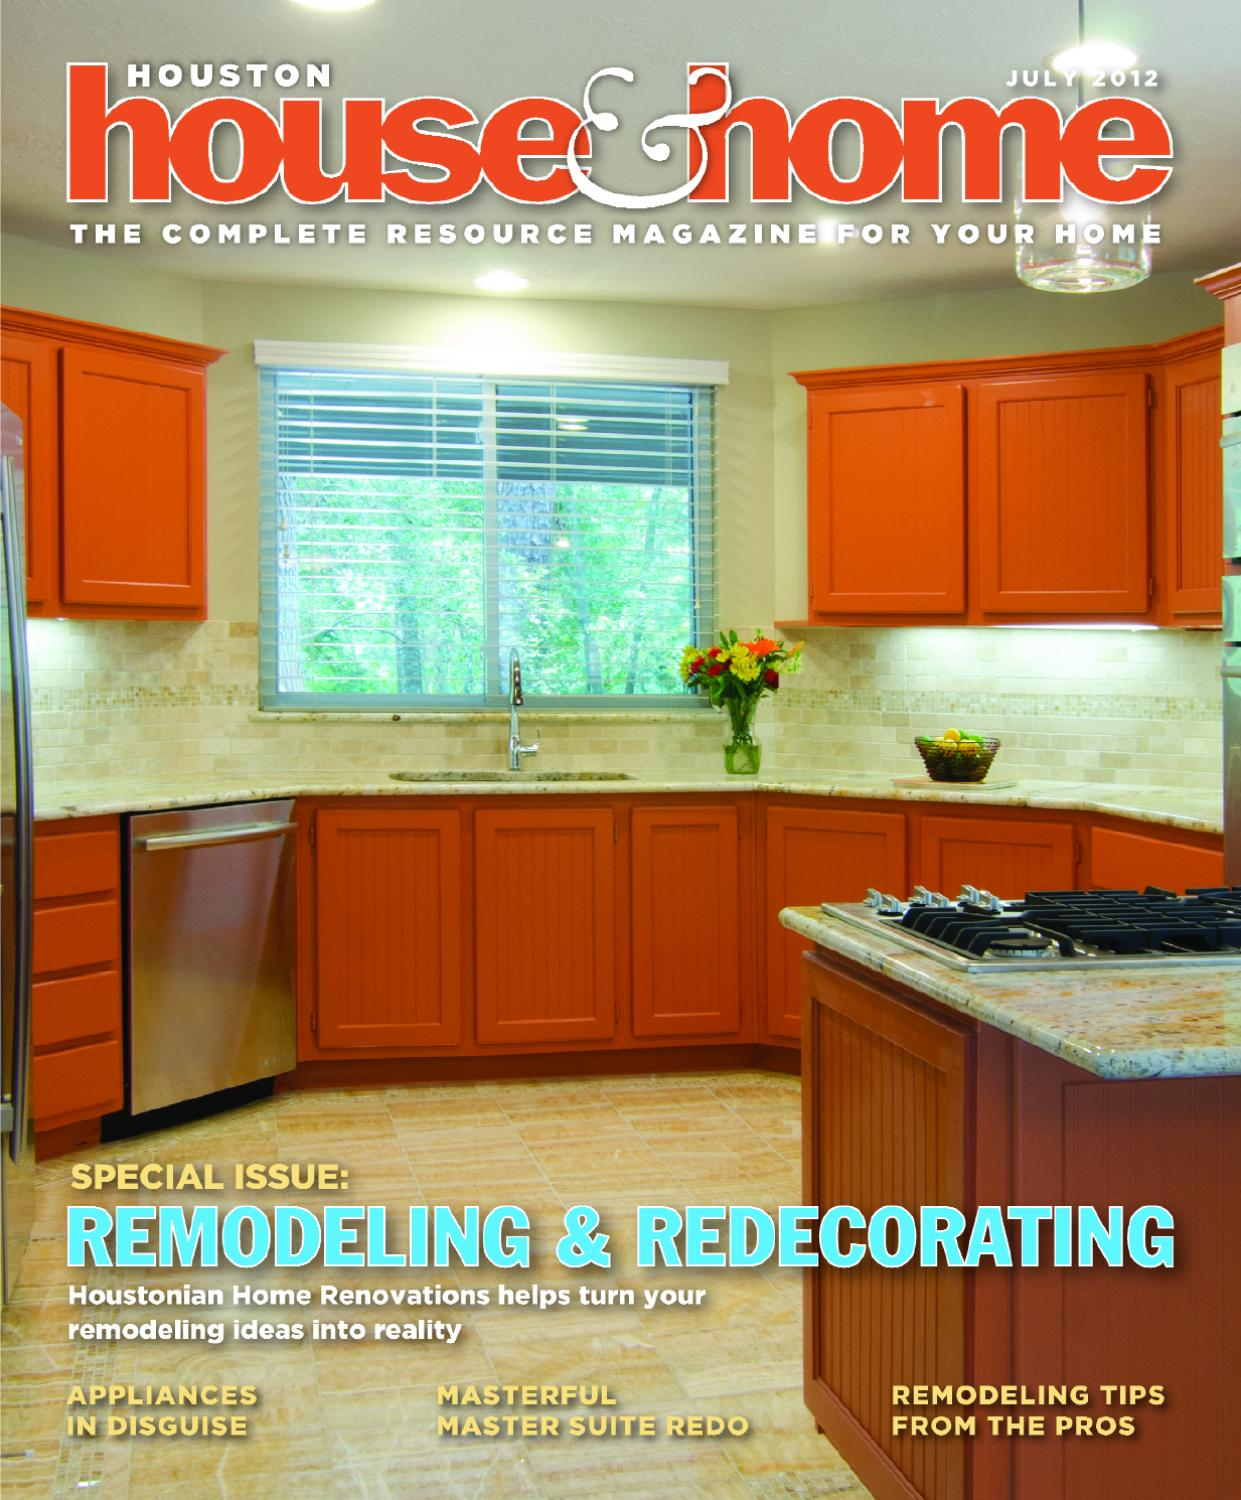 Houston House & Home Magazine July 2012 Issue By Houston